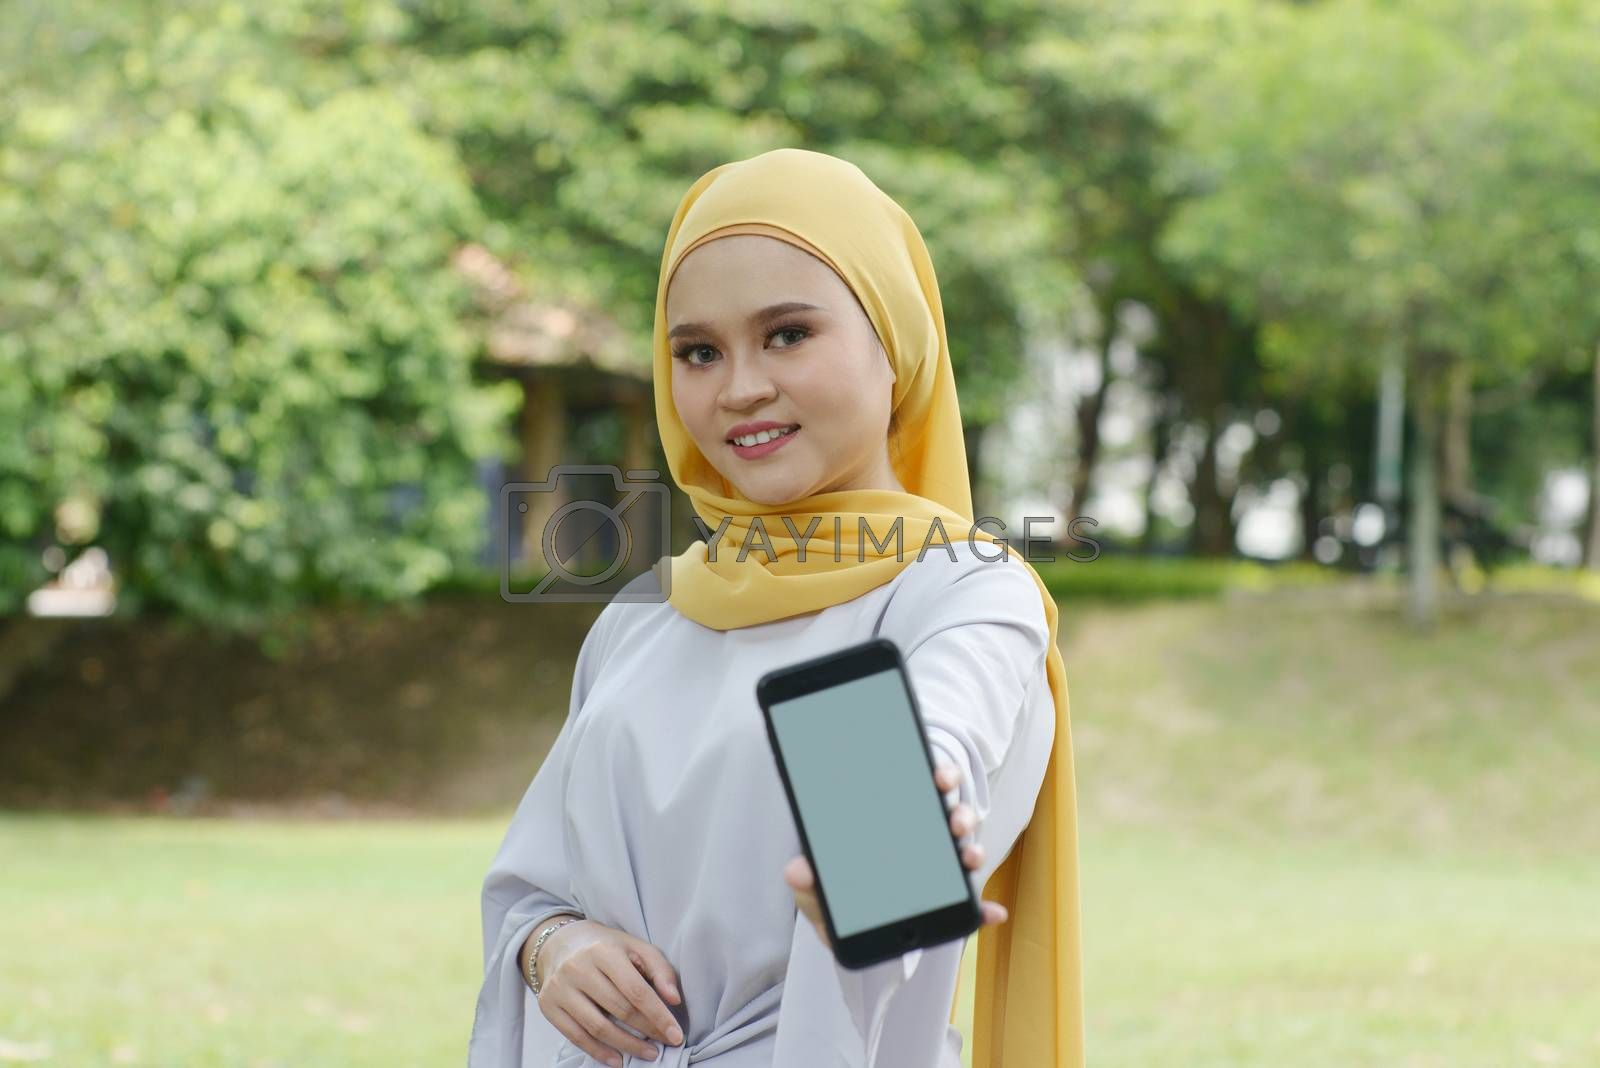 Portrait of cheerful Muslim girl using smartphone, smiling at outdoor.